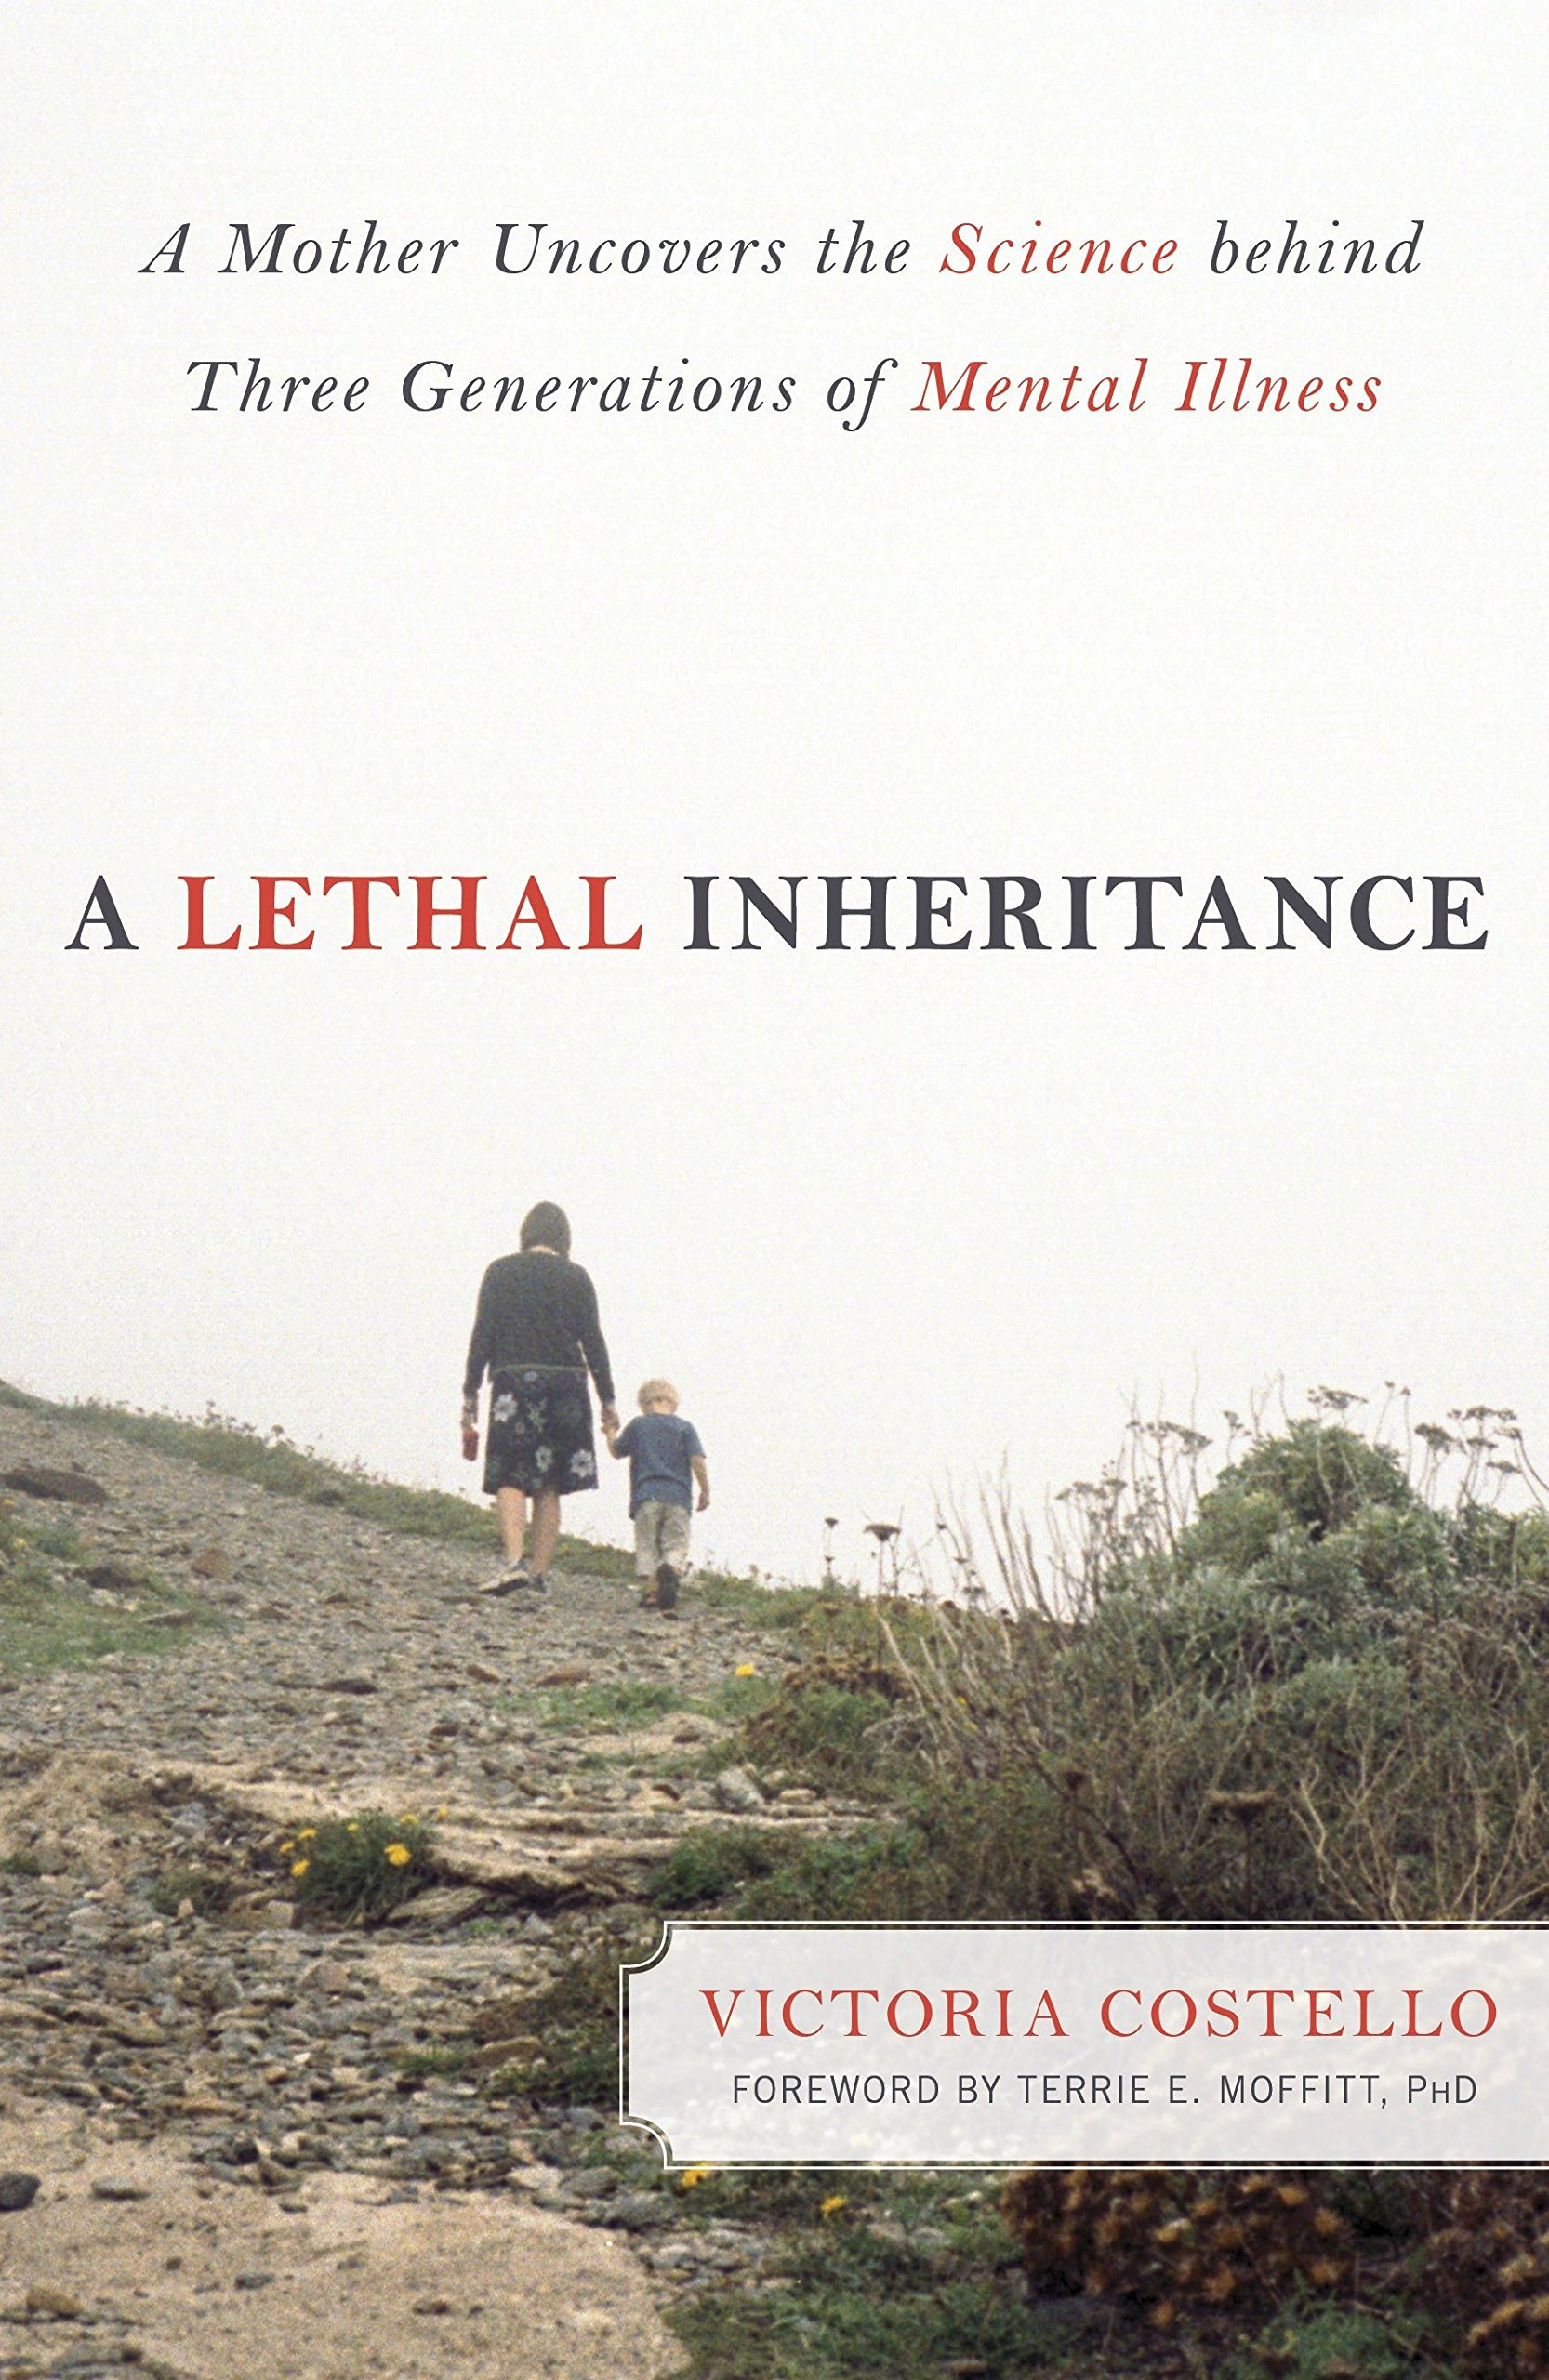 Download A Lethal Inheritance: A Mother Uncovers the Science Behind Three Generations of Mental Illness PDF